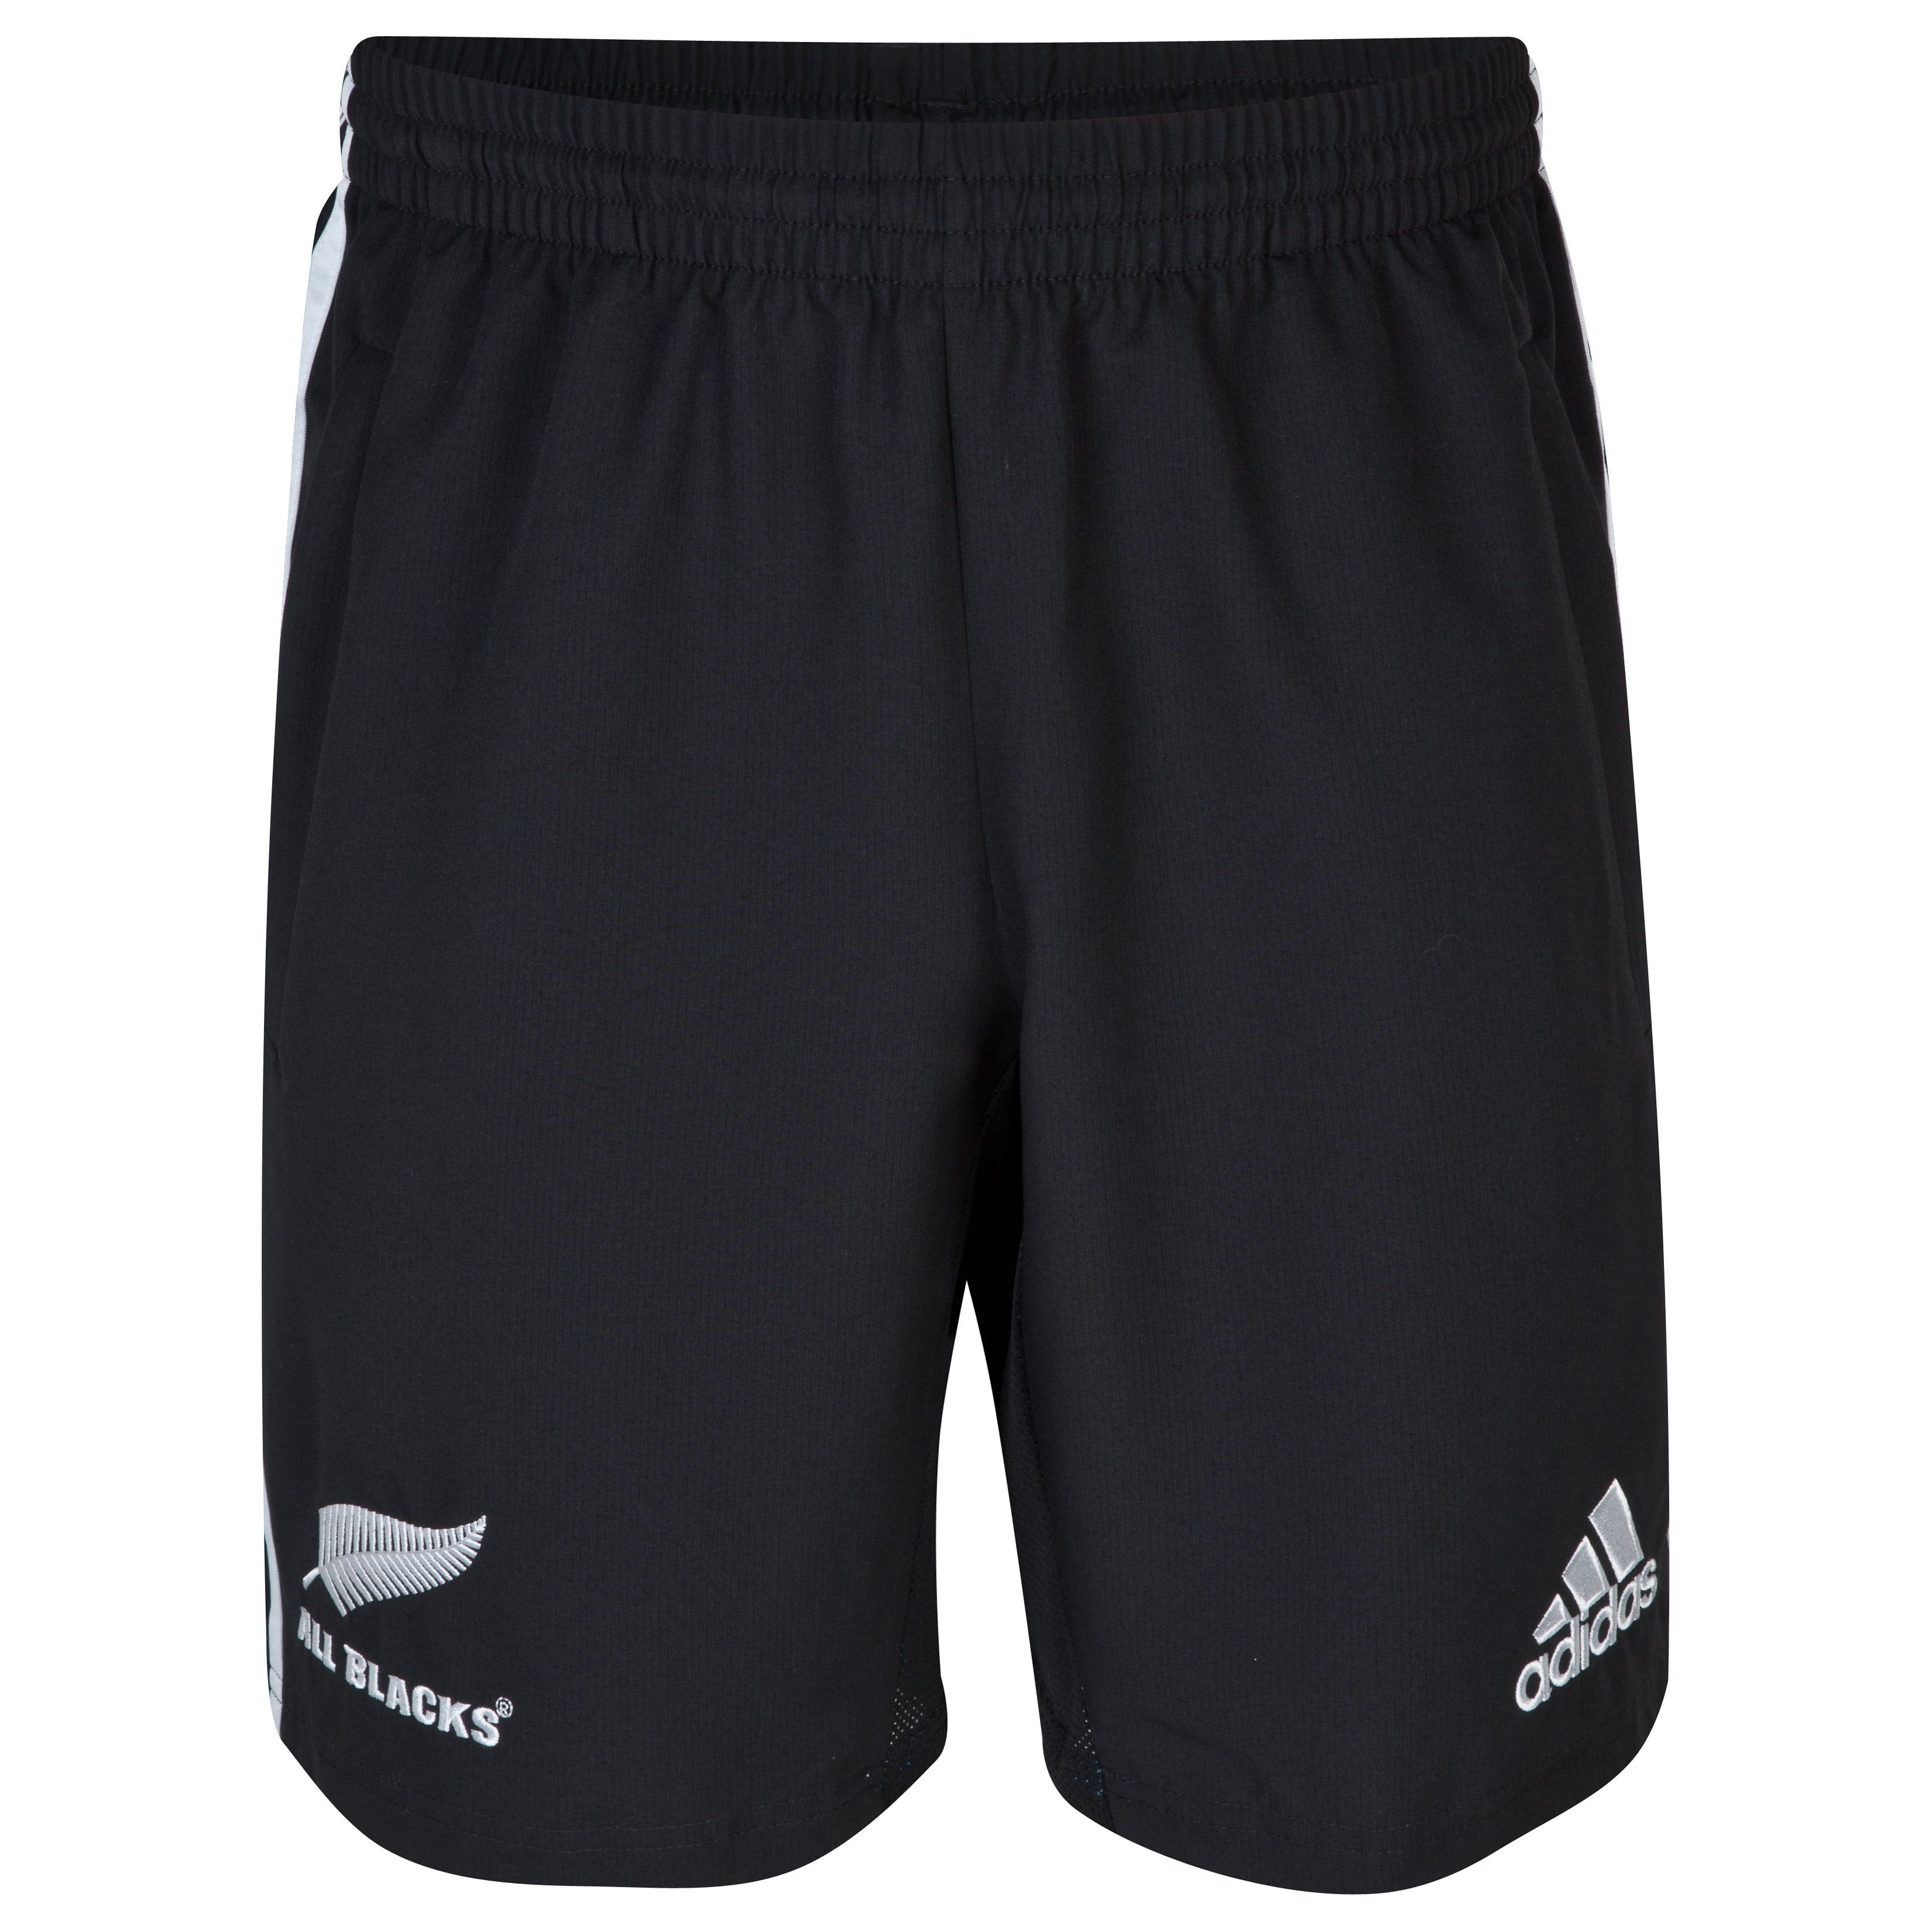 All Blacks Woven Shorts - Black